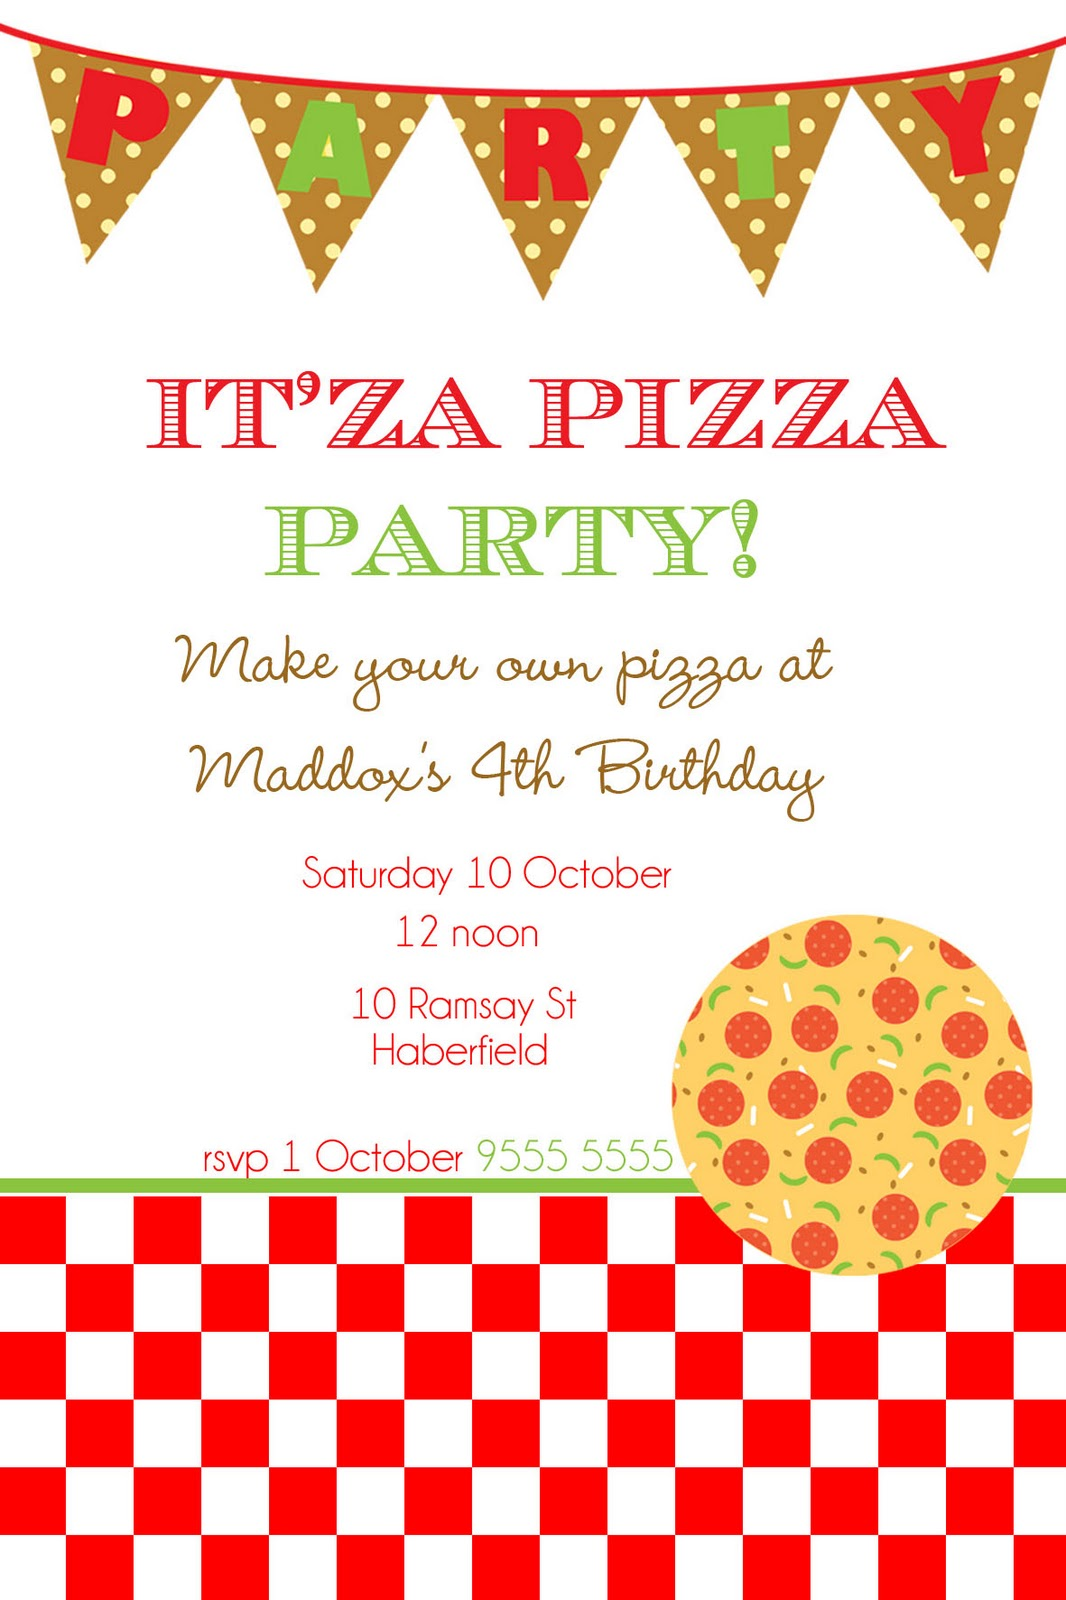 Mon Tresor: Itu0027sa Pizza Party!, Wedding Invitations  Free Party Invitation Template Word